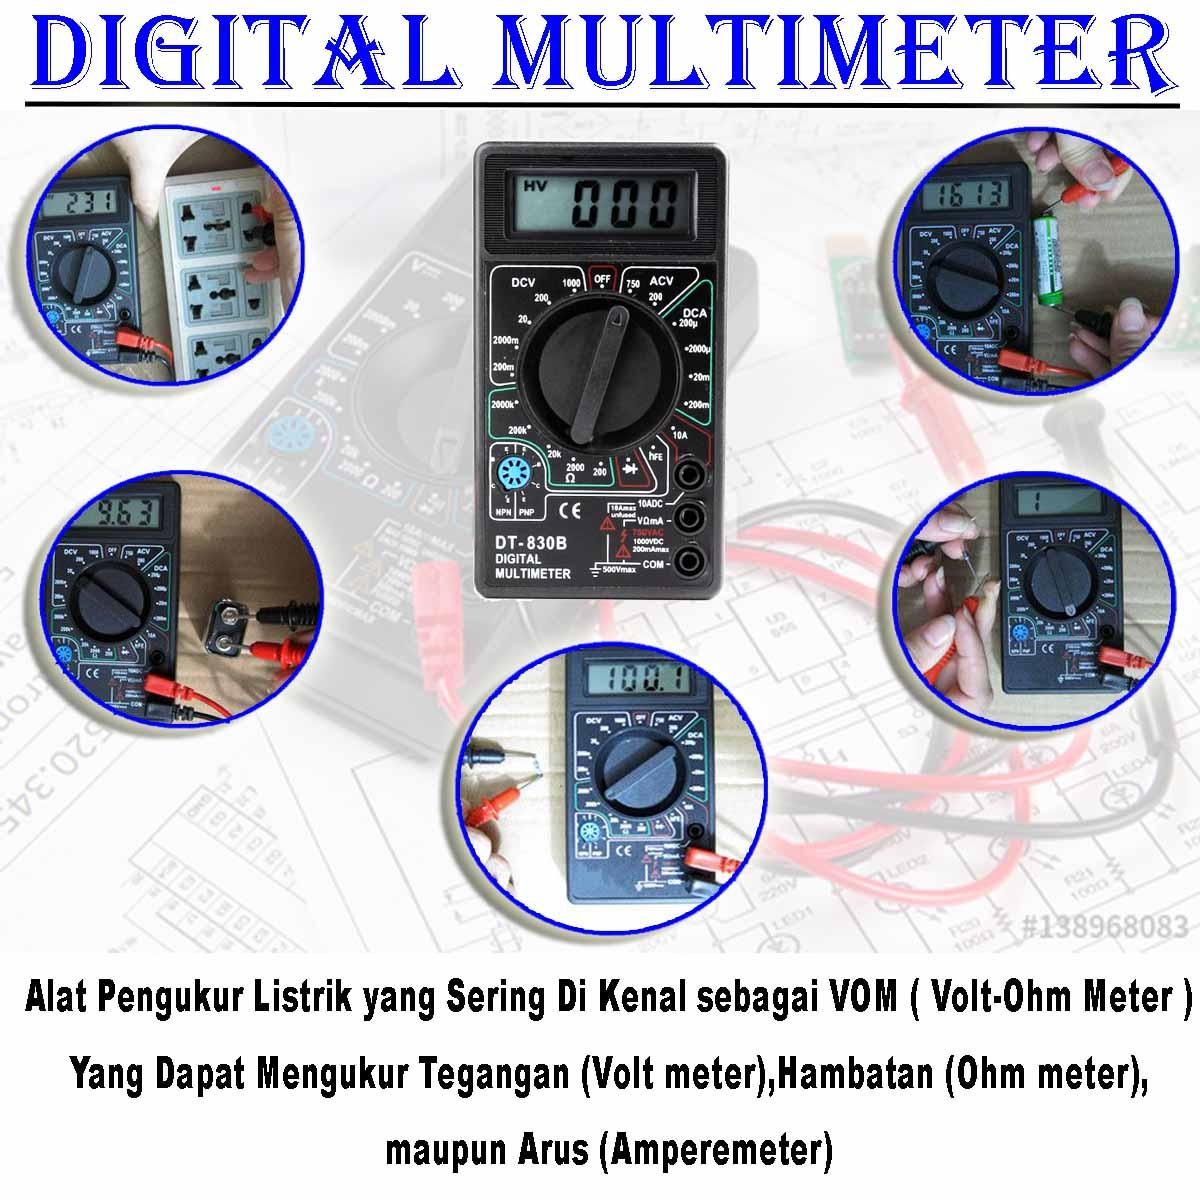 EELIC Multitester - Avometer - Multimeter Digital DT830B | Lazada Indonesia